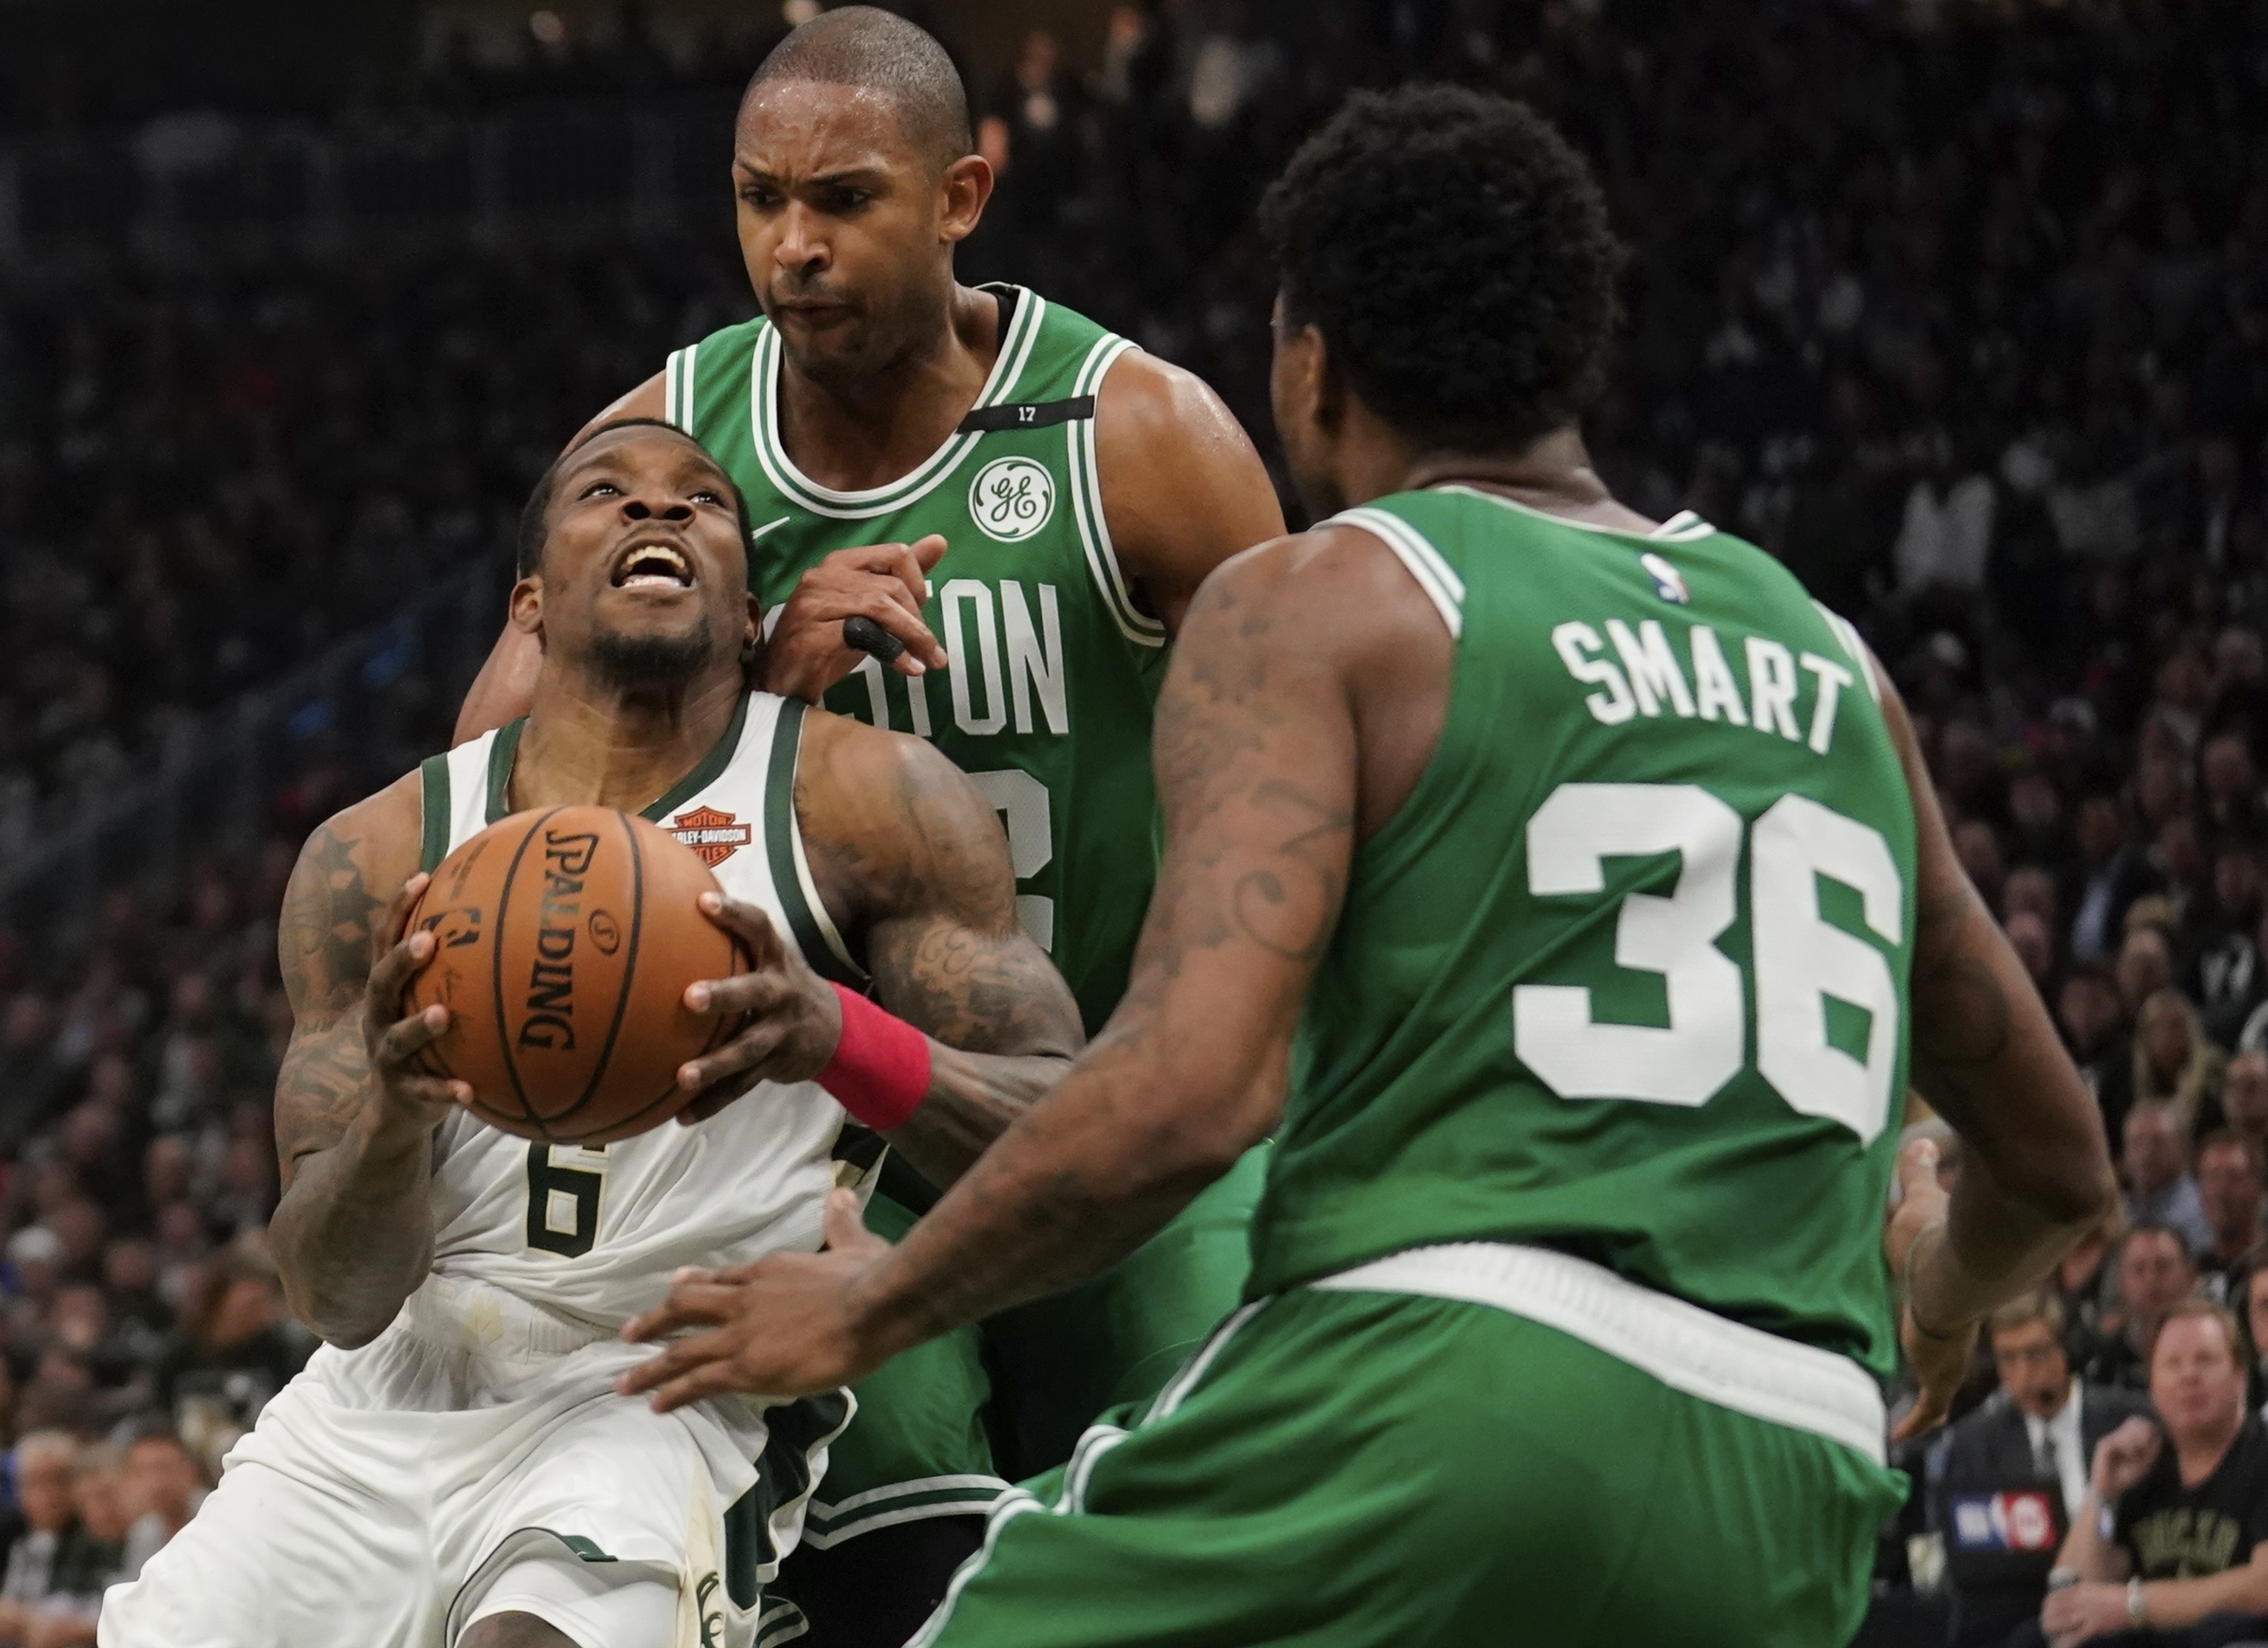 cba3efad165a Milwaukee Bucks  Eric Bledsoe tries to drive past Boston Celtics  Al  Horford and Marcus Smart during the first half of Game 5 of a second round  NBA ...